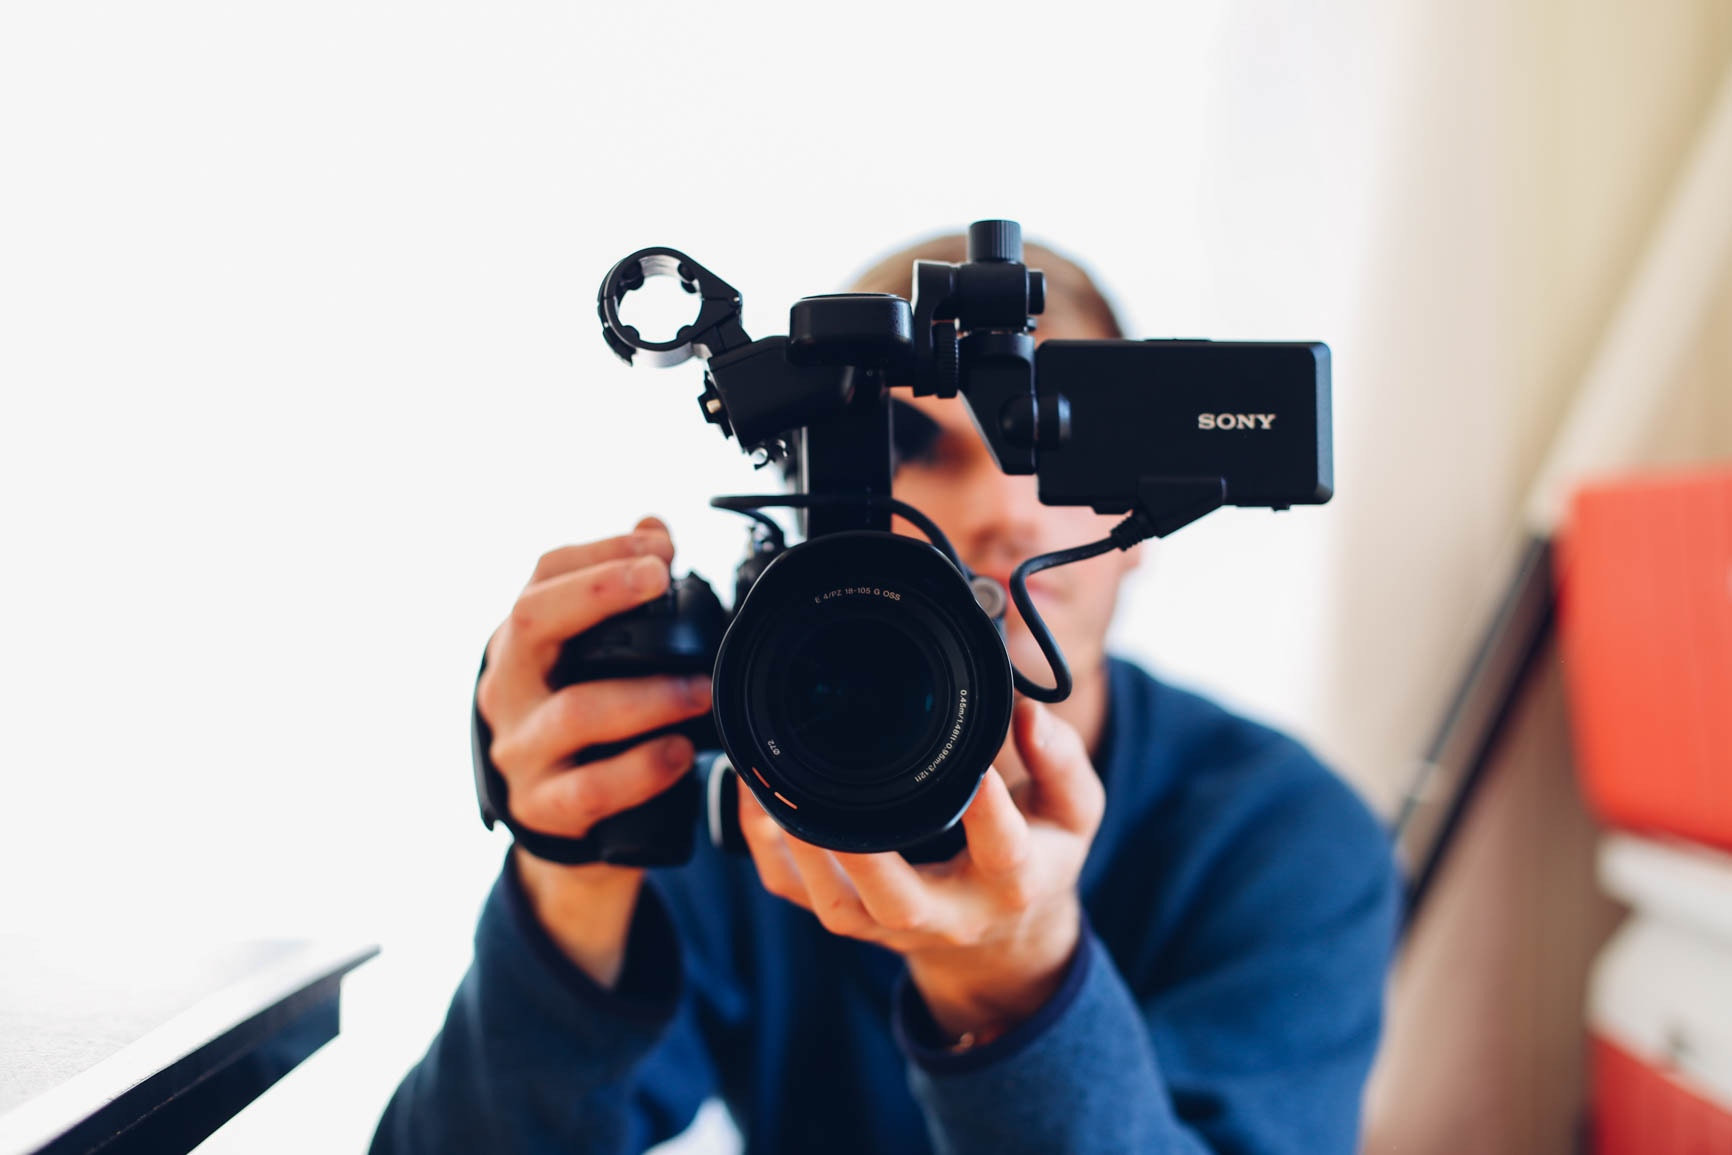 ideal-video-content-lenght||ideal-video-content-lenght||||fiverr-video-intro-pro-gig||fiverr-video-intro-gig||video-customer_journey_funnel